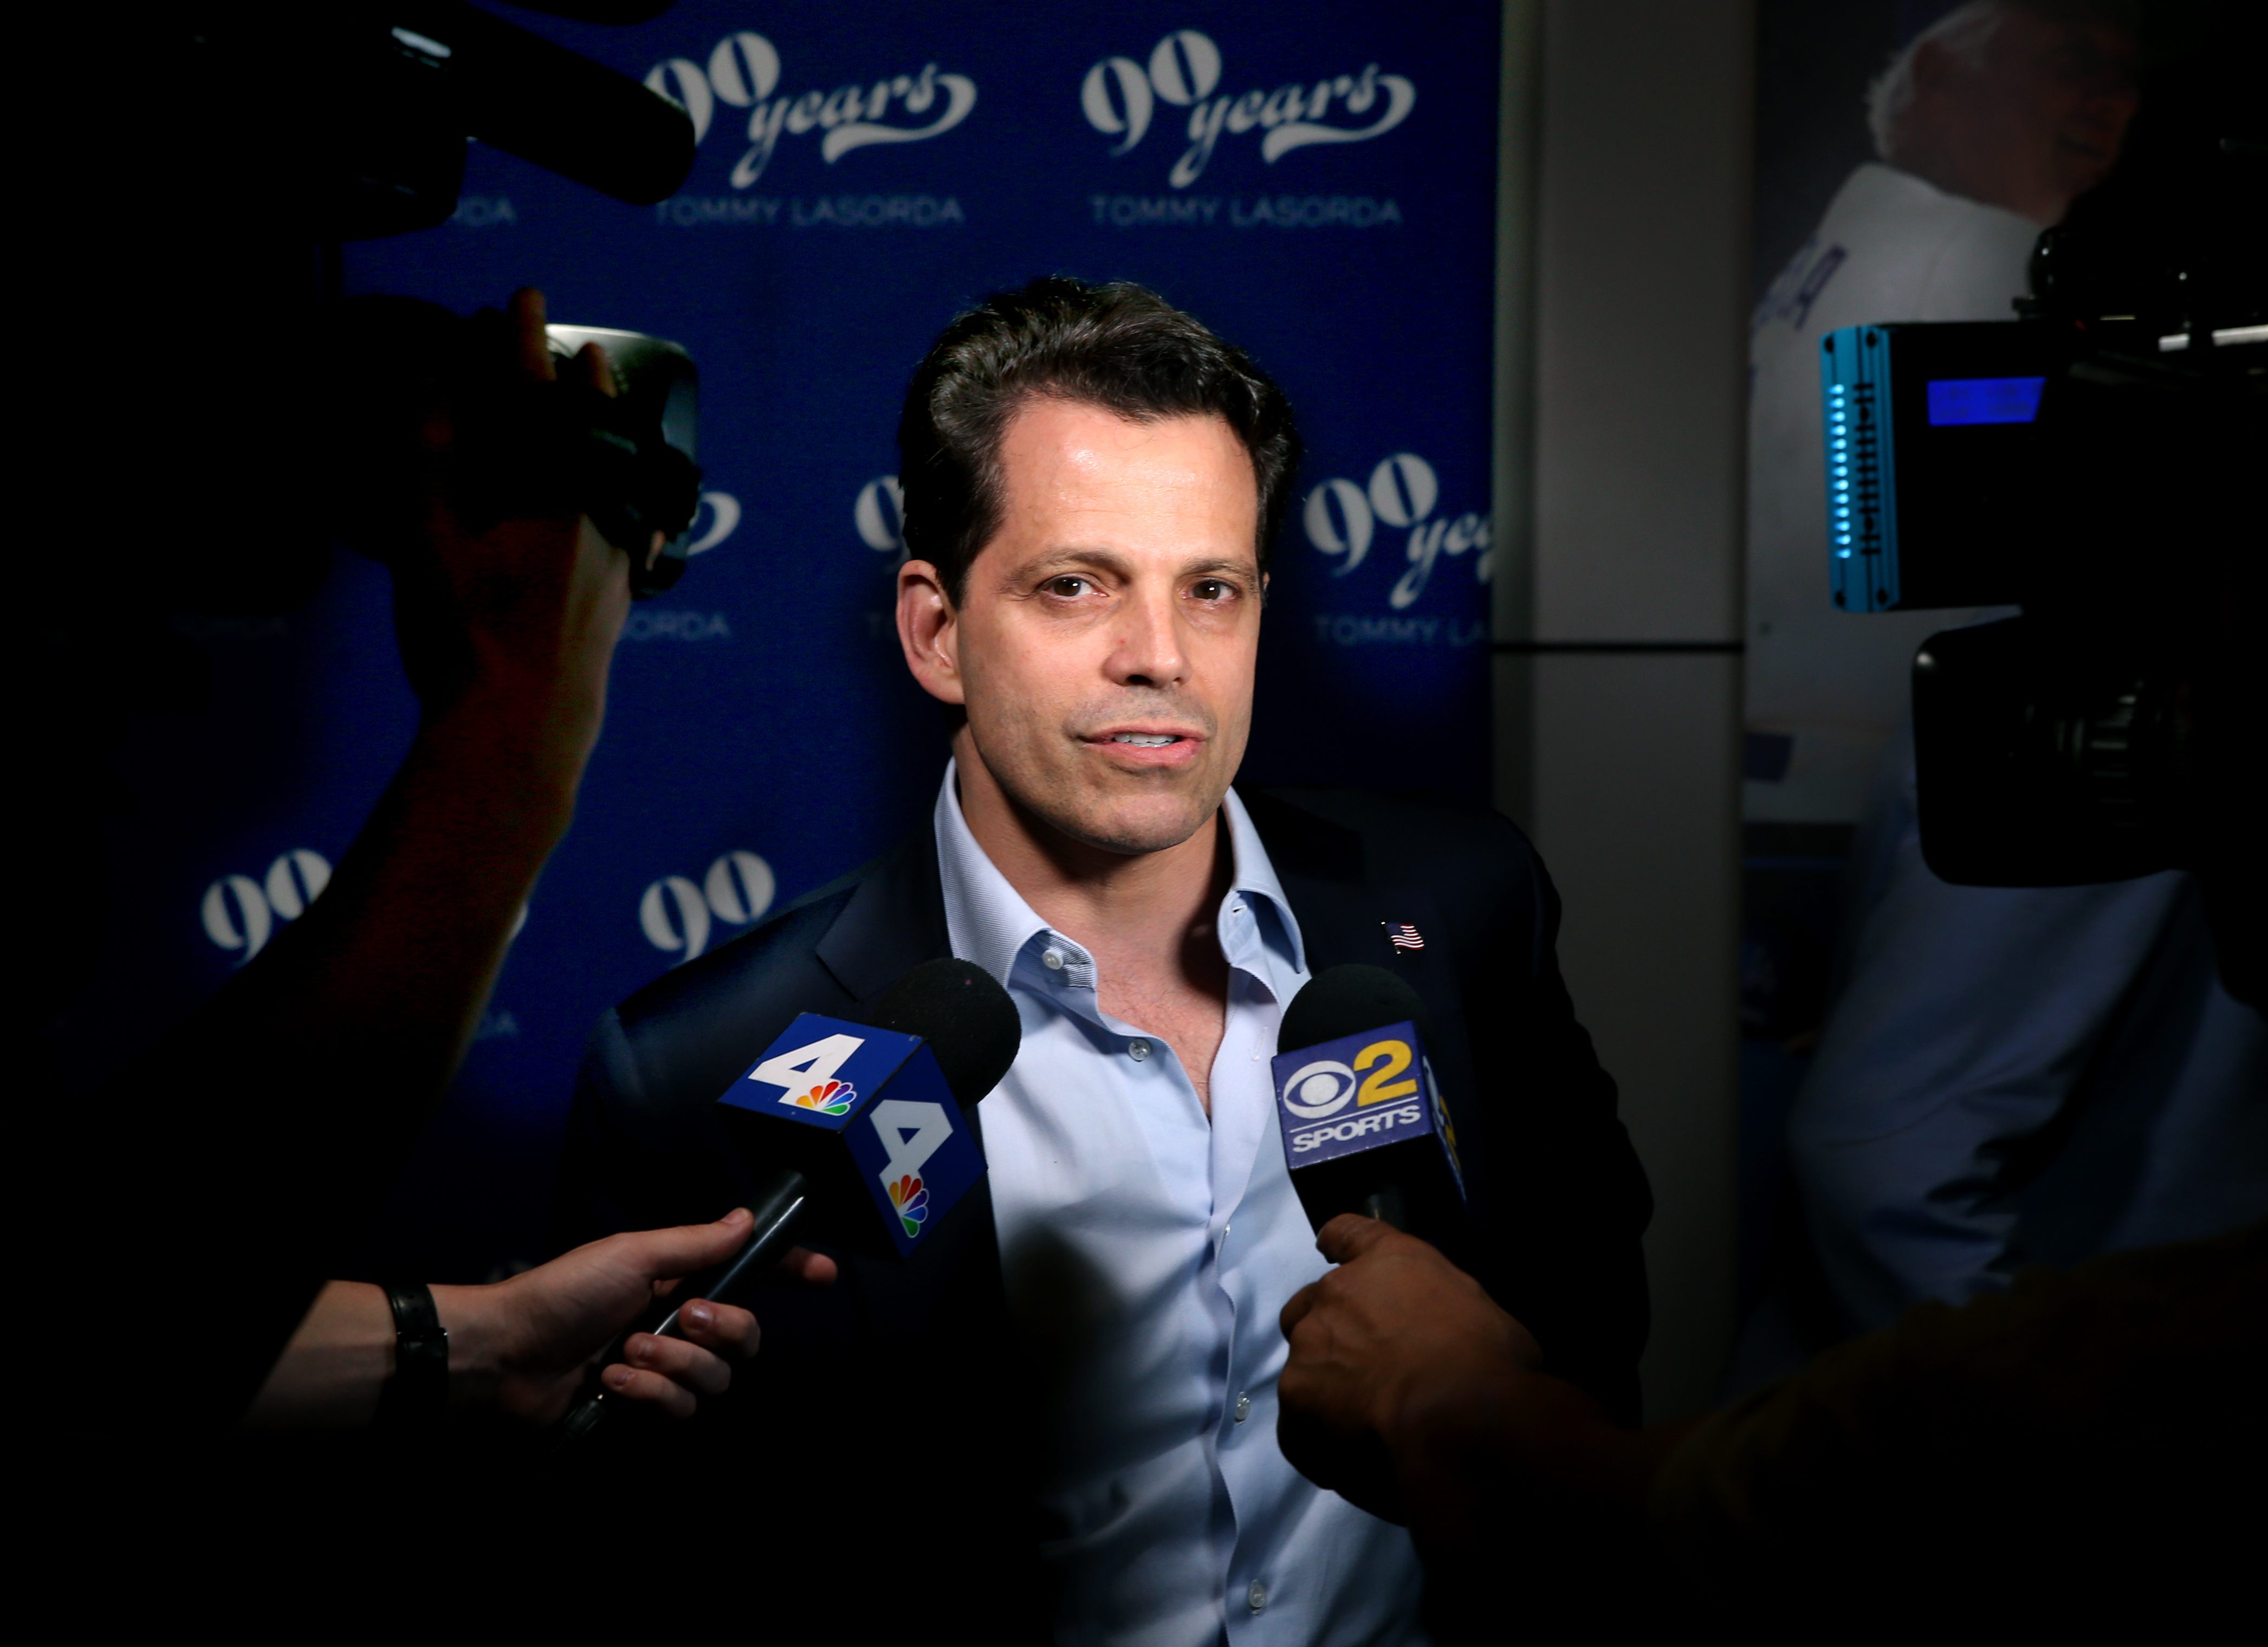 Anthony Scaramucci at Tommy Lasorda's 90th Birthday Celebration at The Getty Center on September 24, 2017 in Los Angeles, California.